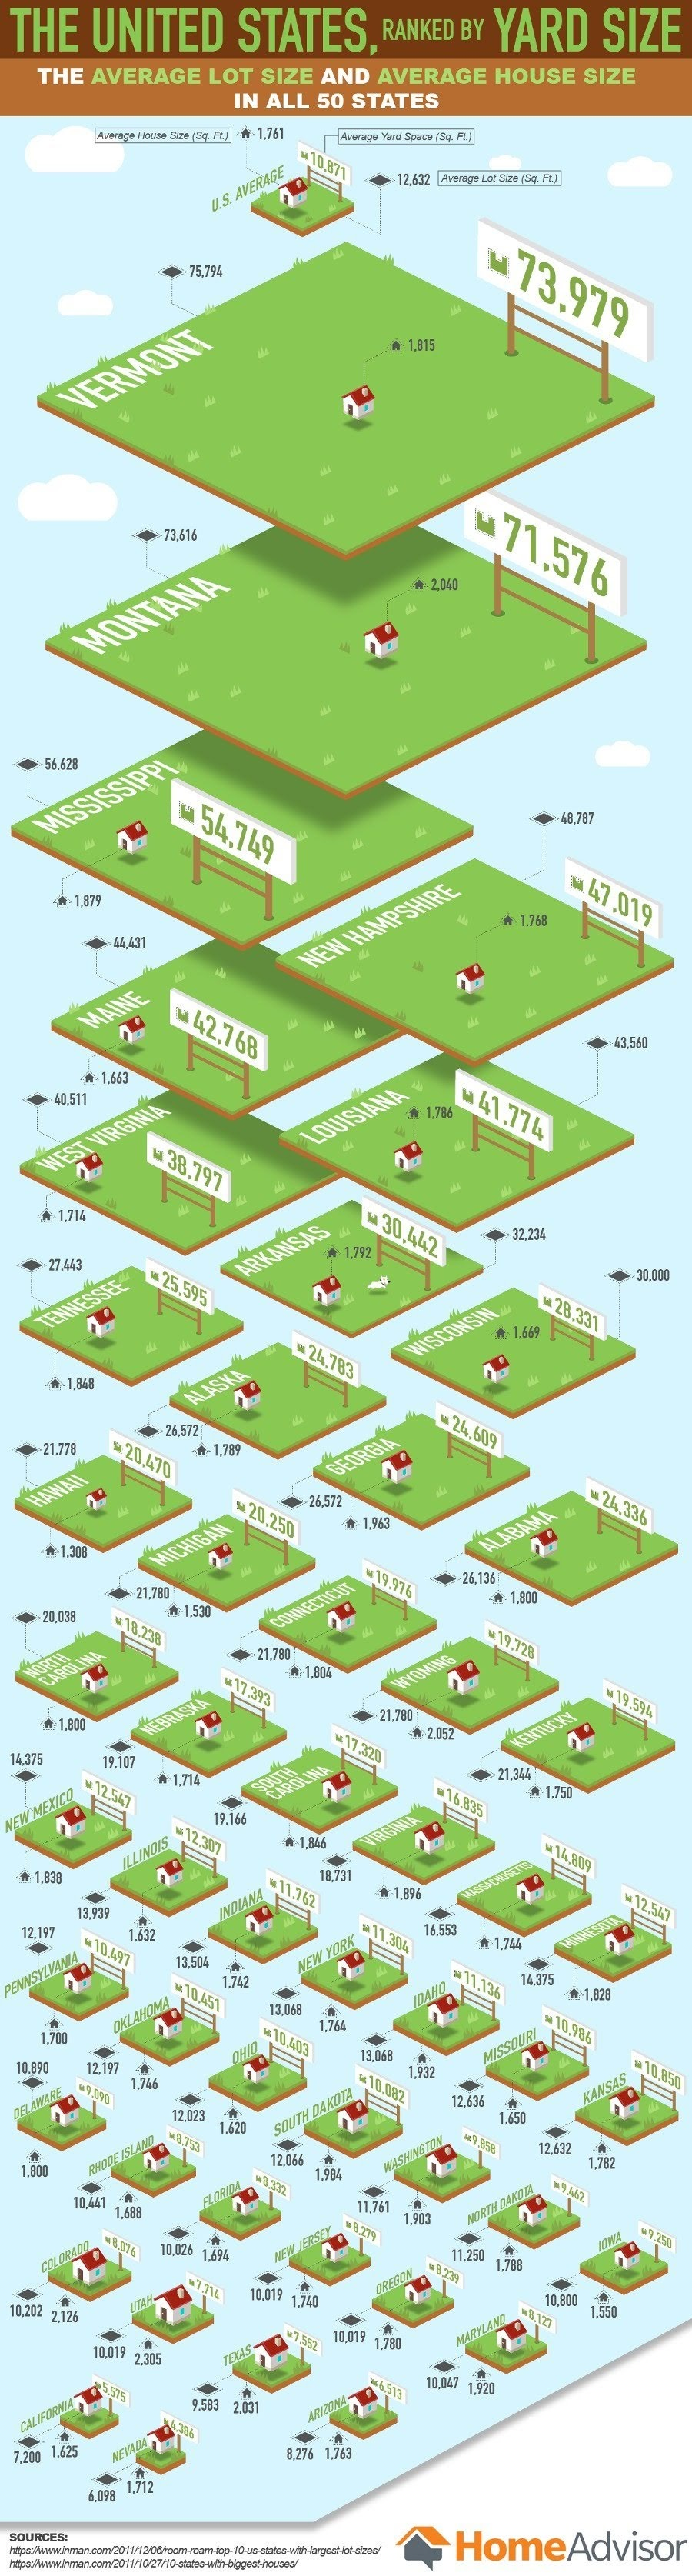 The United States, Ranked by Yard Size: Vermont Residents Have the Biggest Yards! #Infographic